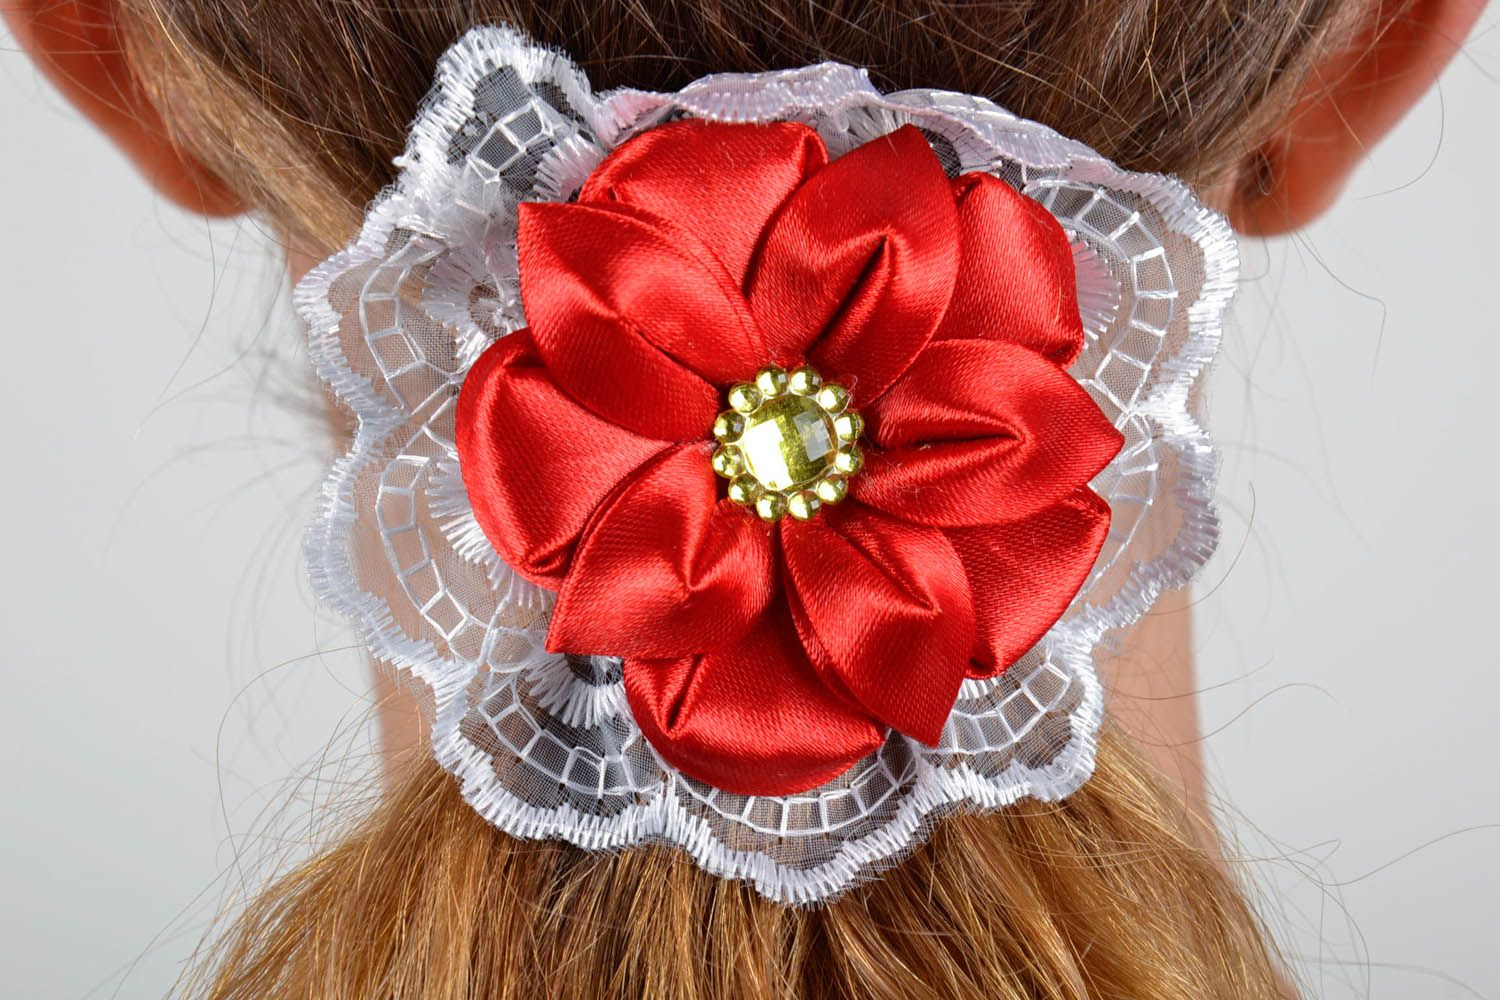 Scrunchy Red Flower photo 5